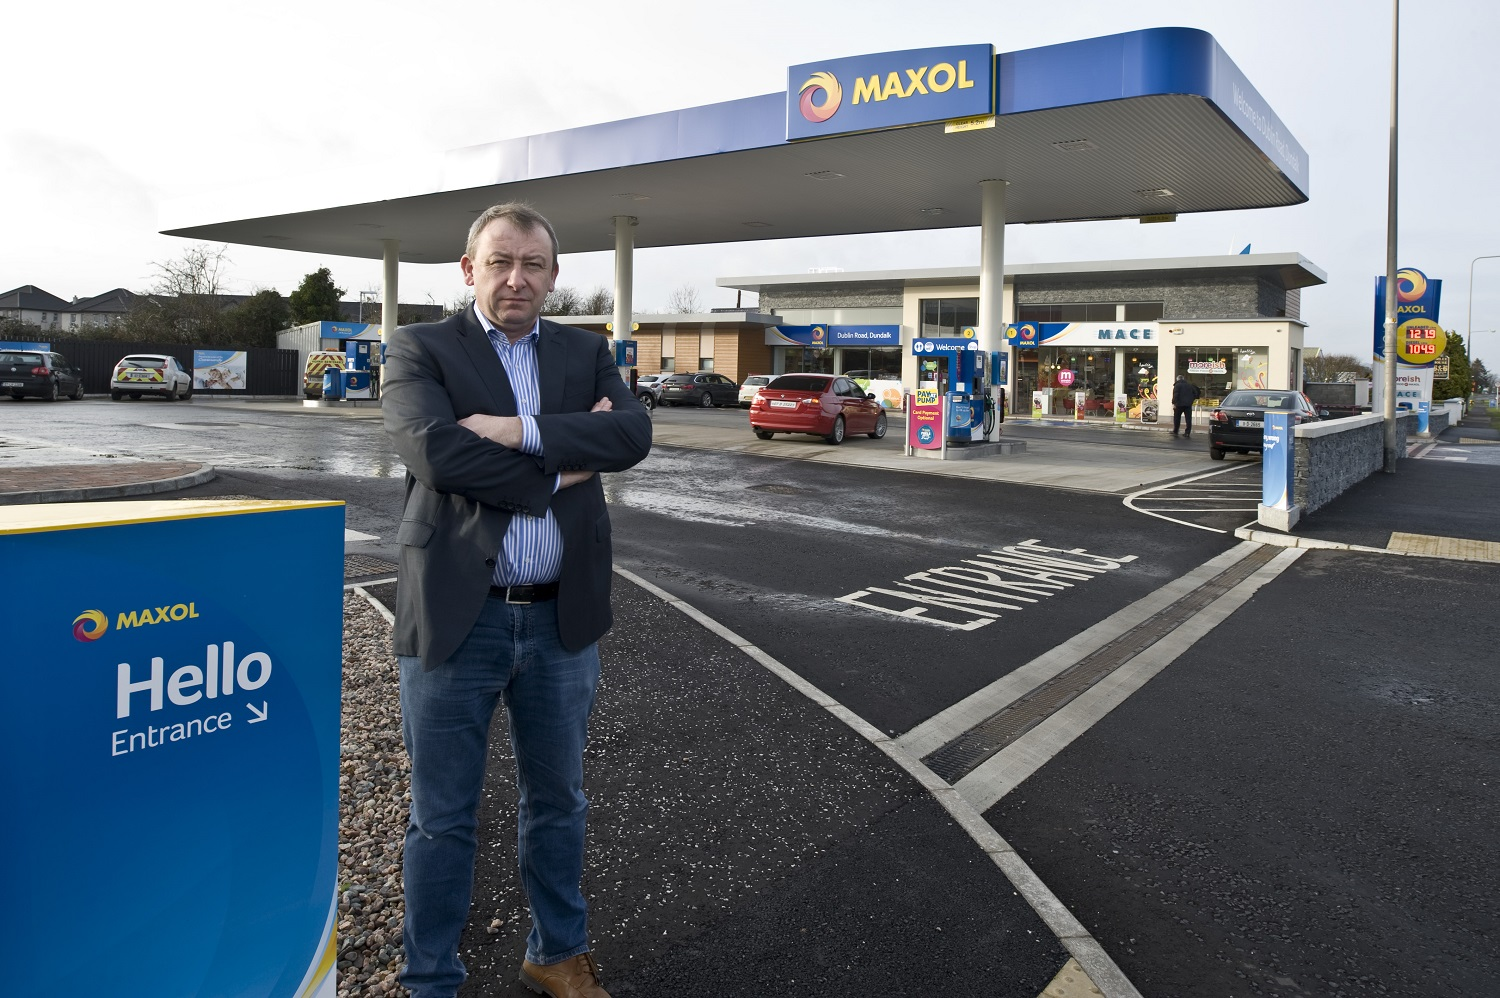 Maxol at the heart of it in Dundalk